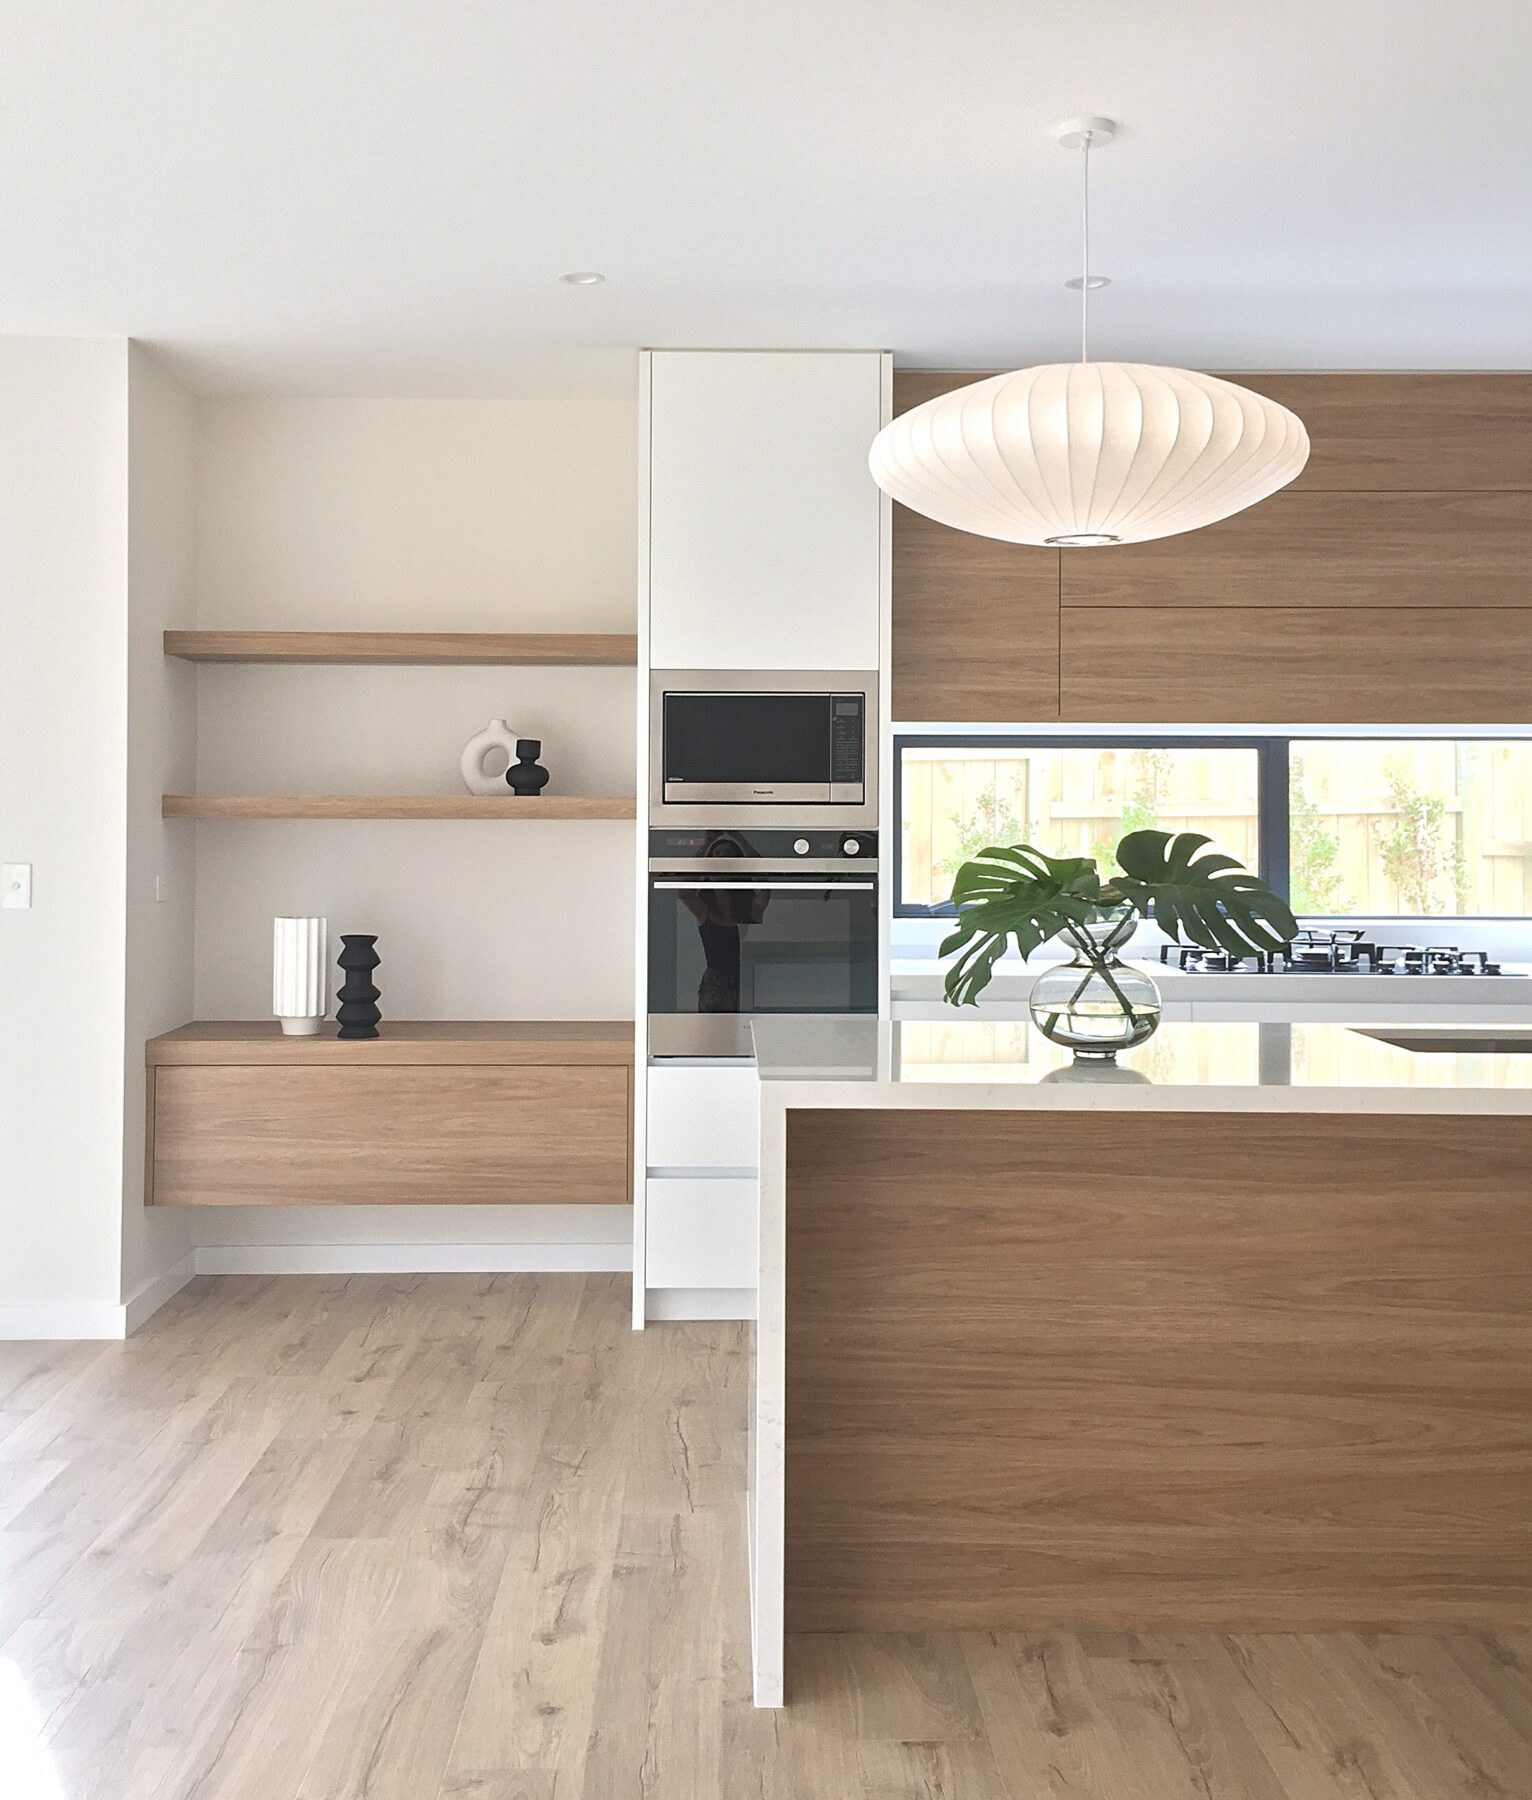 modern kitchen design with stone tops and wooden detailing with built in shelves, simple designer styling, white feature pendant light, plant